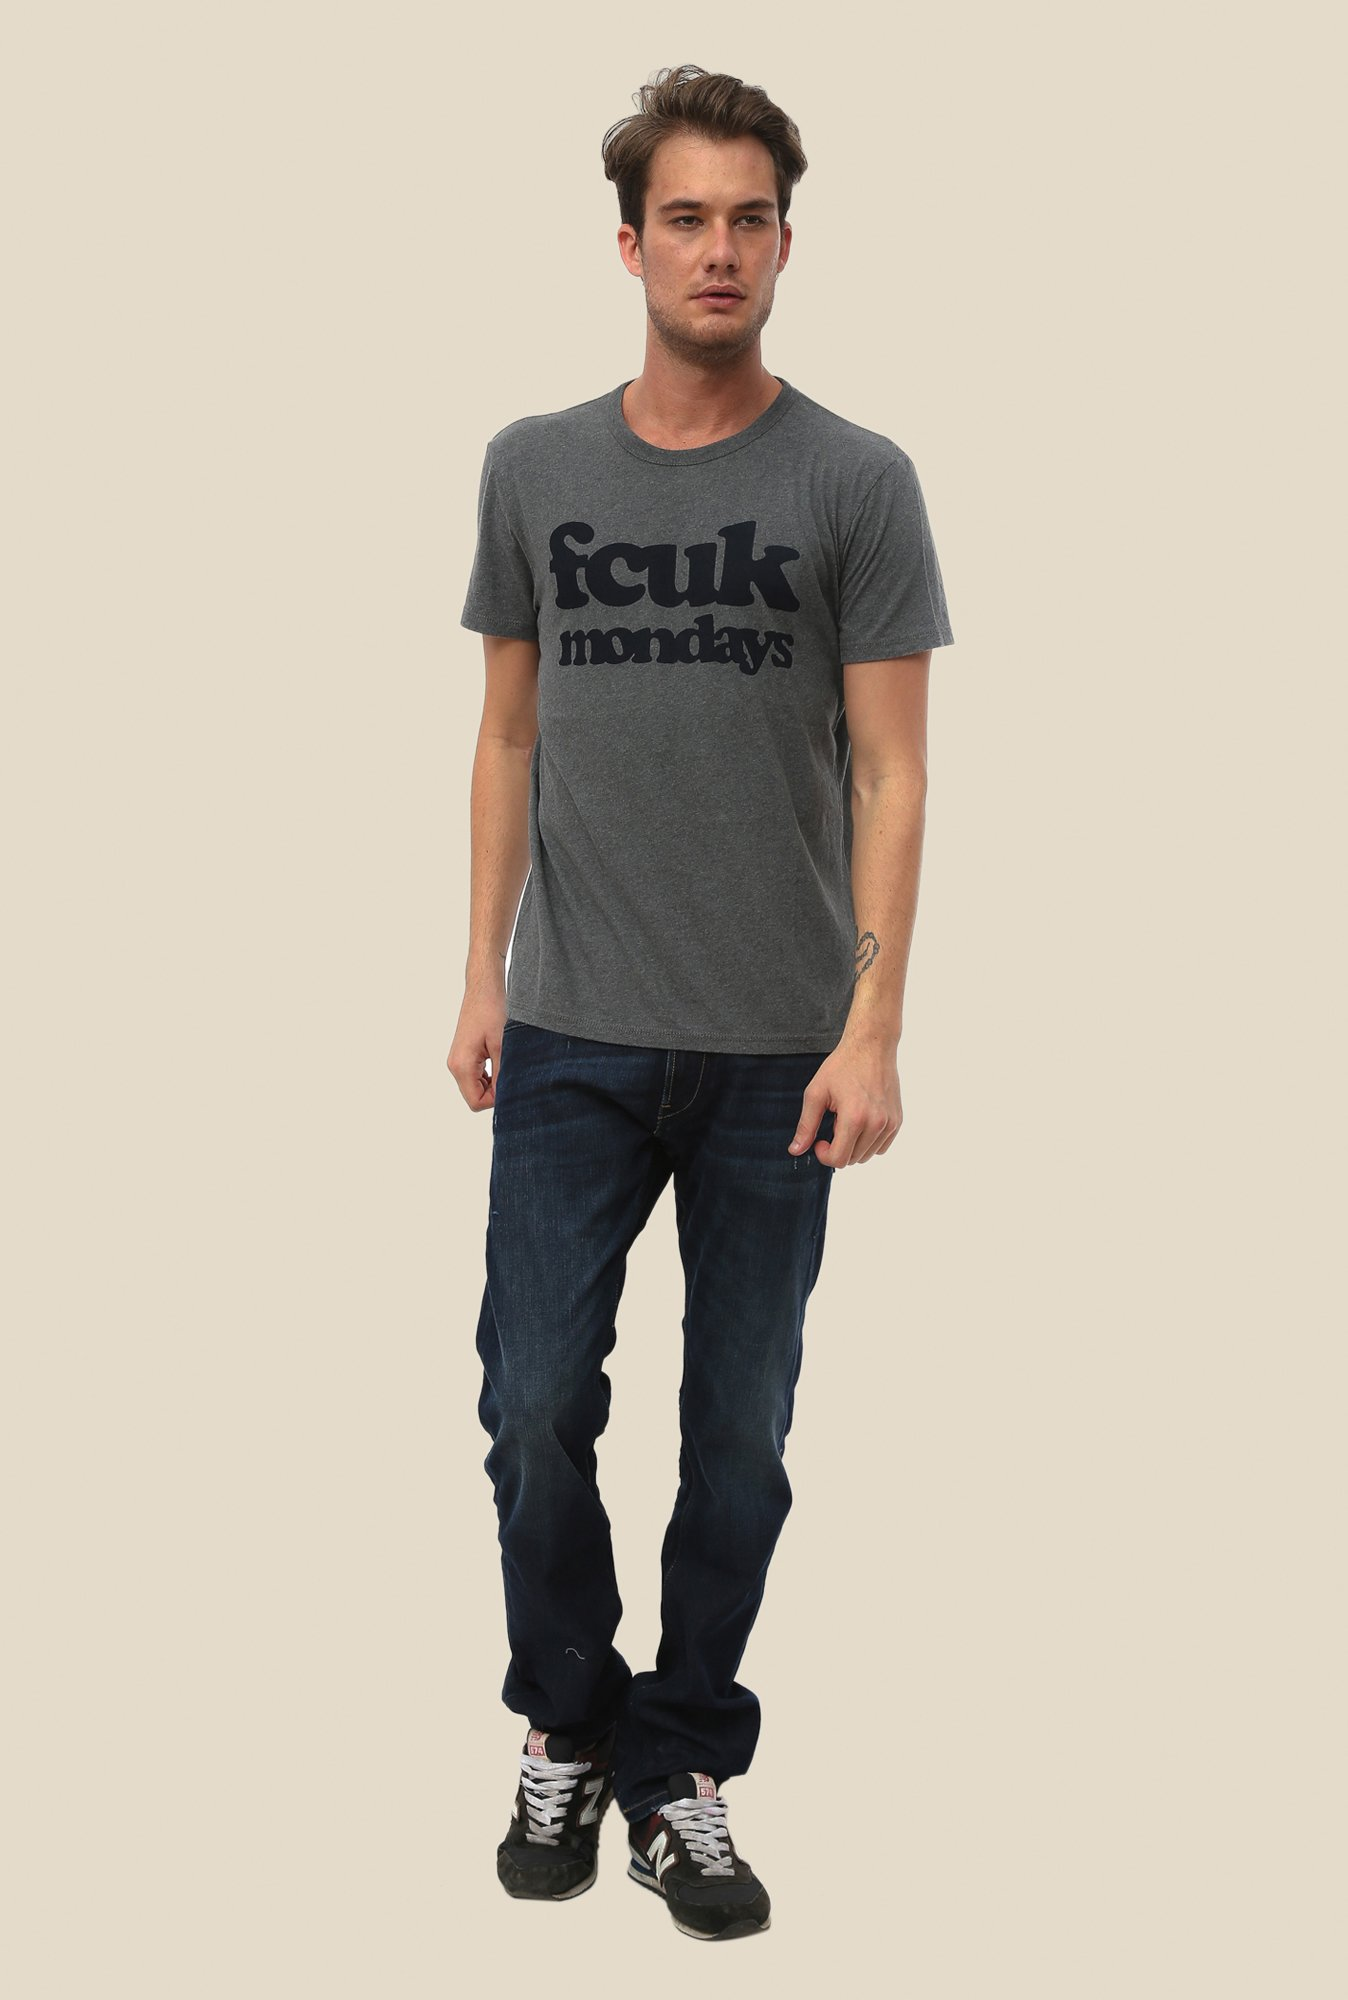 FCUK Grey Printed Short Sleeve T Shirt